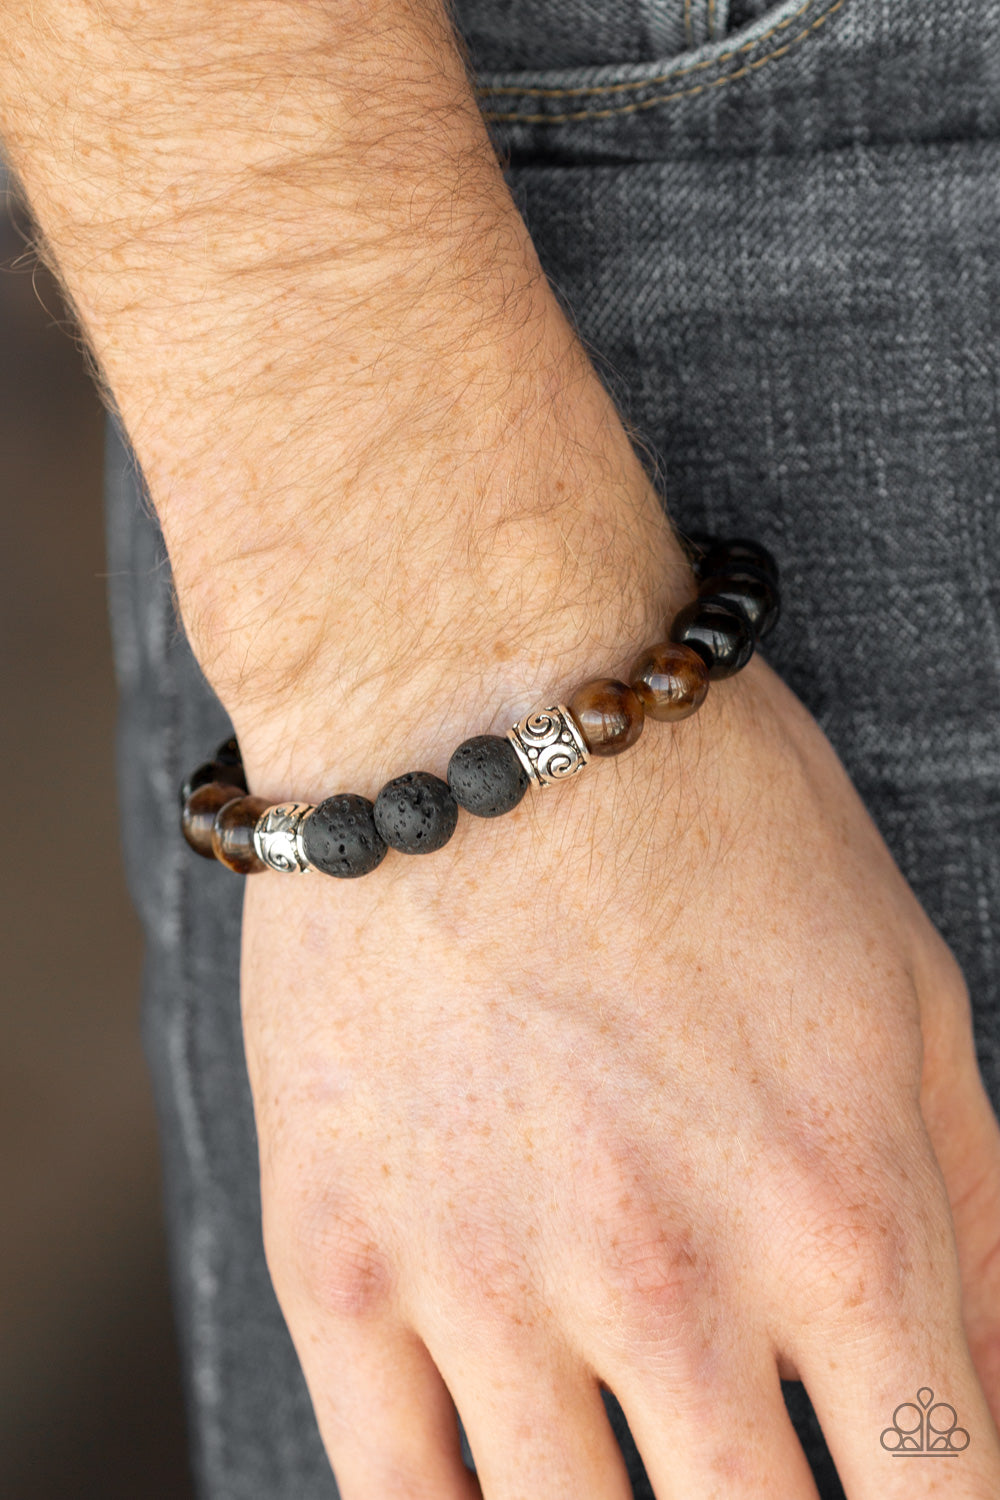 Mantra - Black Shiny Beads with Brown Cat's Eye Beads & Lava Beads Bracelet